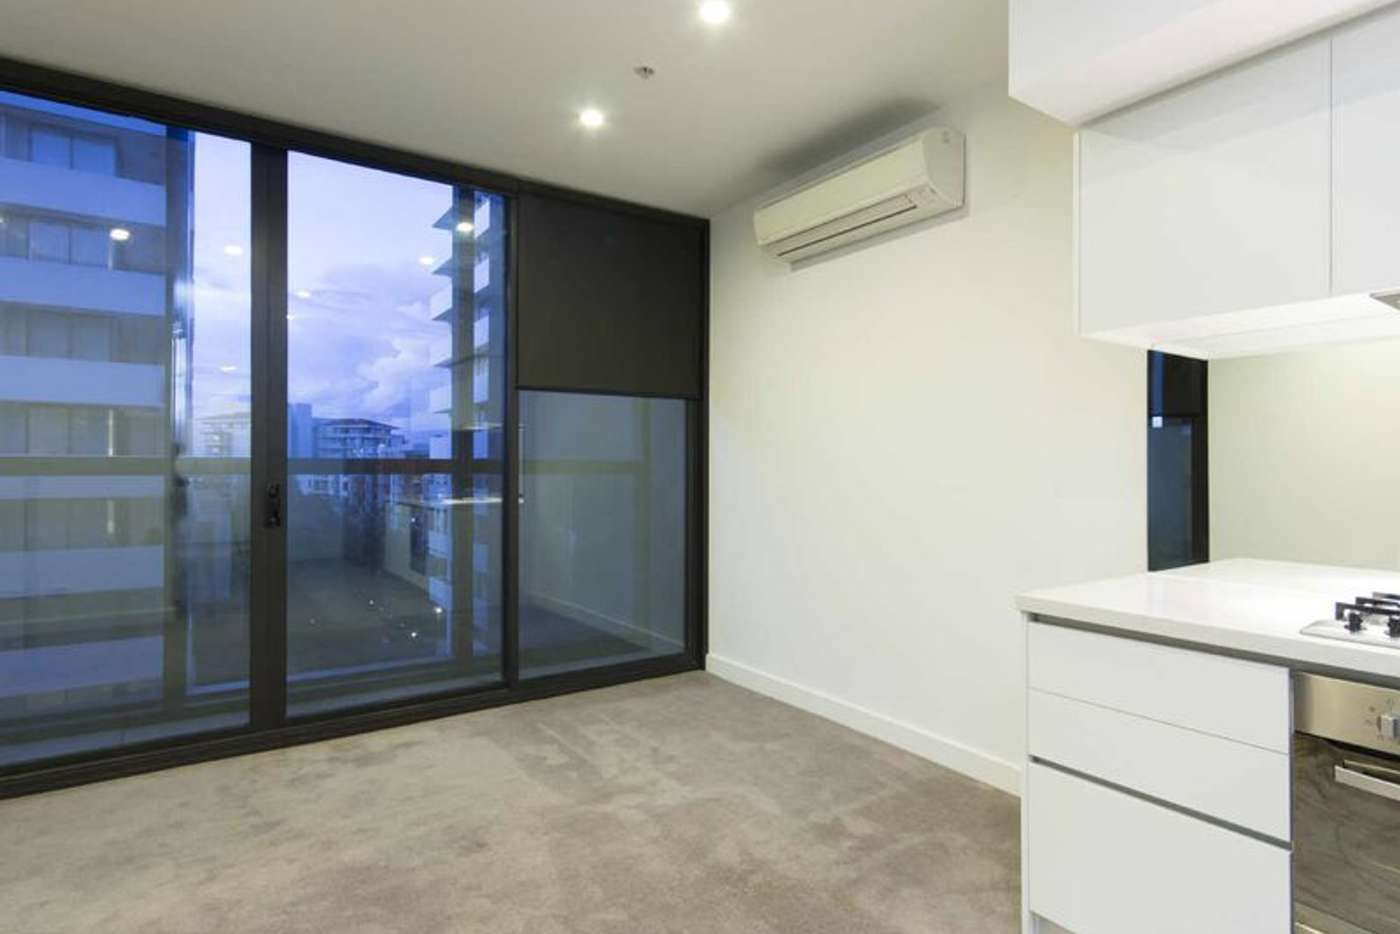 Main view of Homely apartment listing, 321/35 Malcolm Street, South Yarra VIC 3141